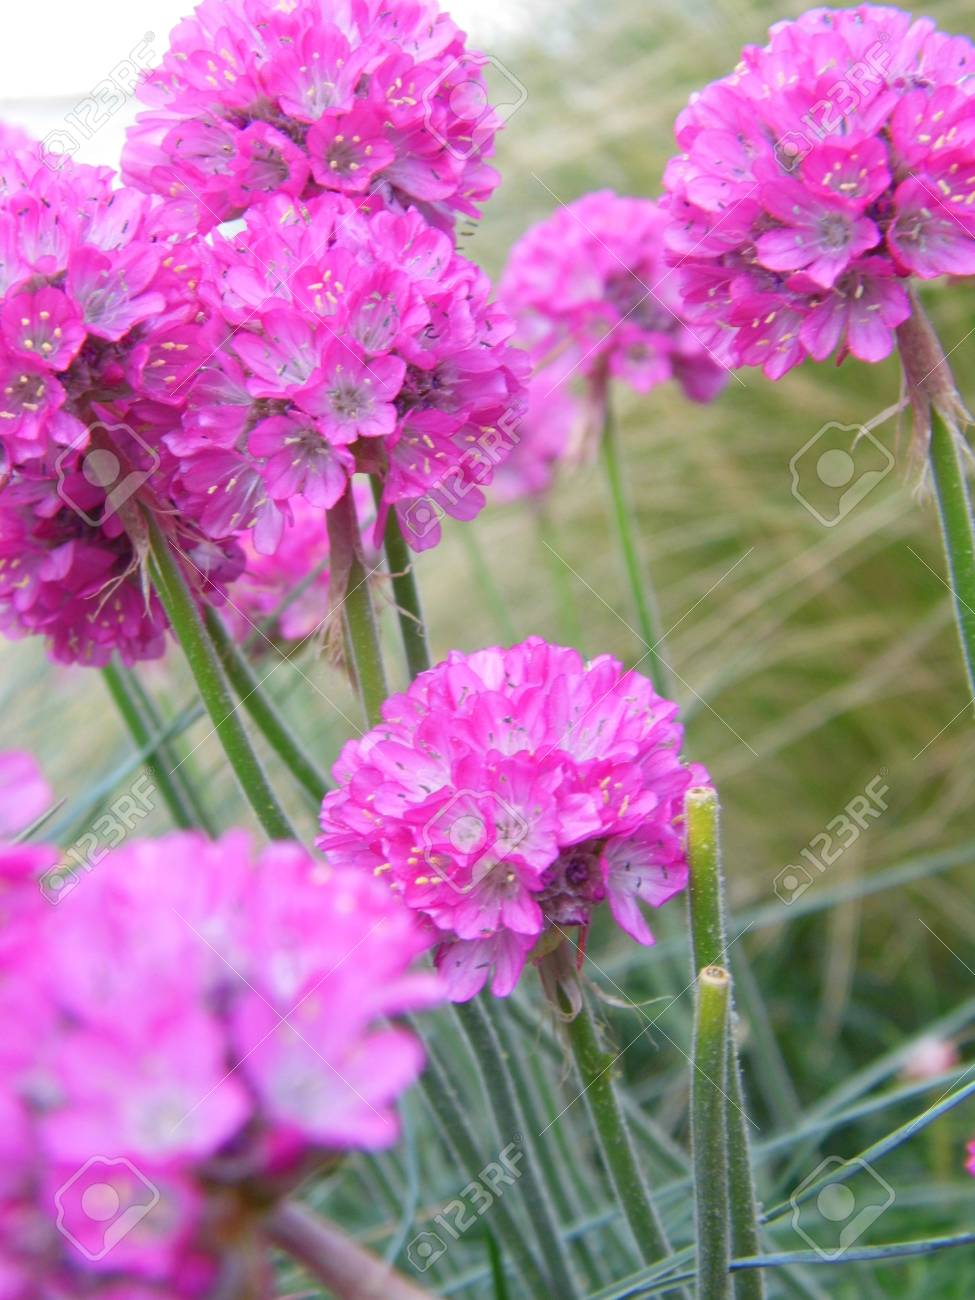 Several pink allium flowers in a garden border stock photo picture several pink allium flowers in a garden border stock photo 92540474 mightylinksfo Image collections